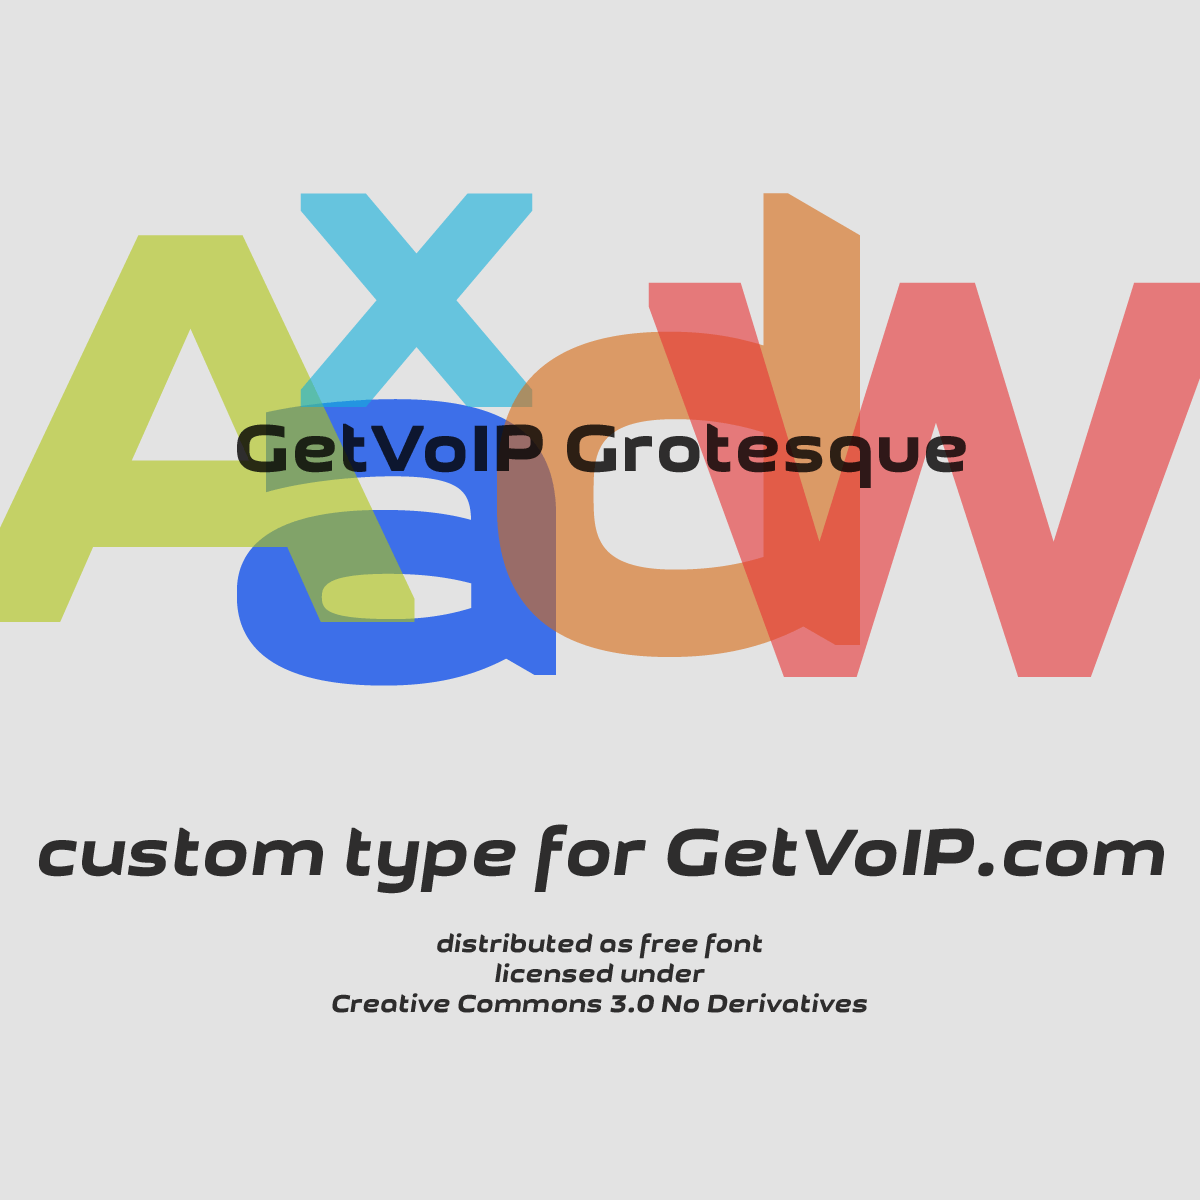 Шрифт GetVoIP Grotesque